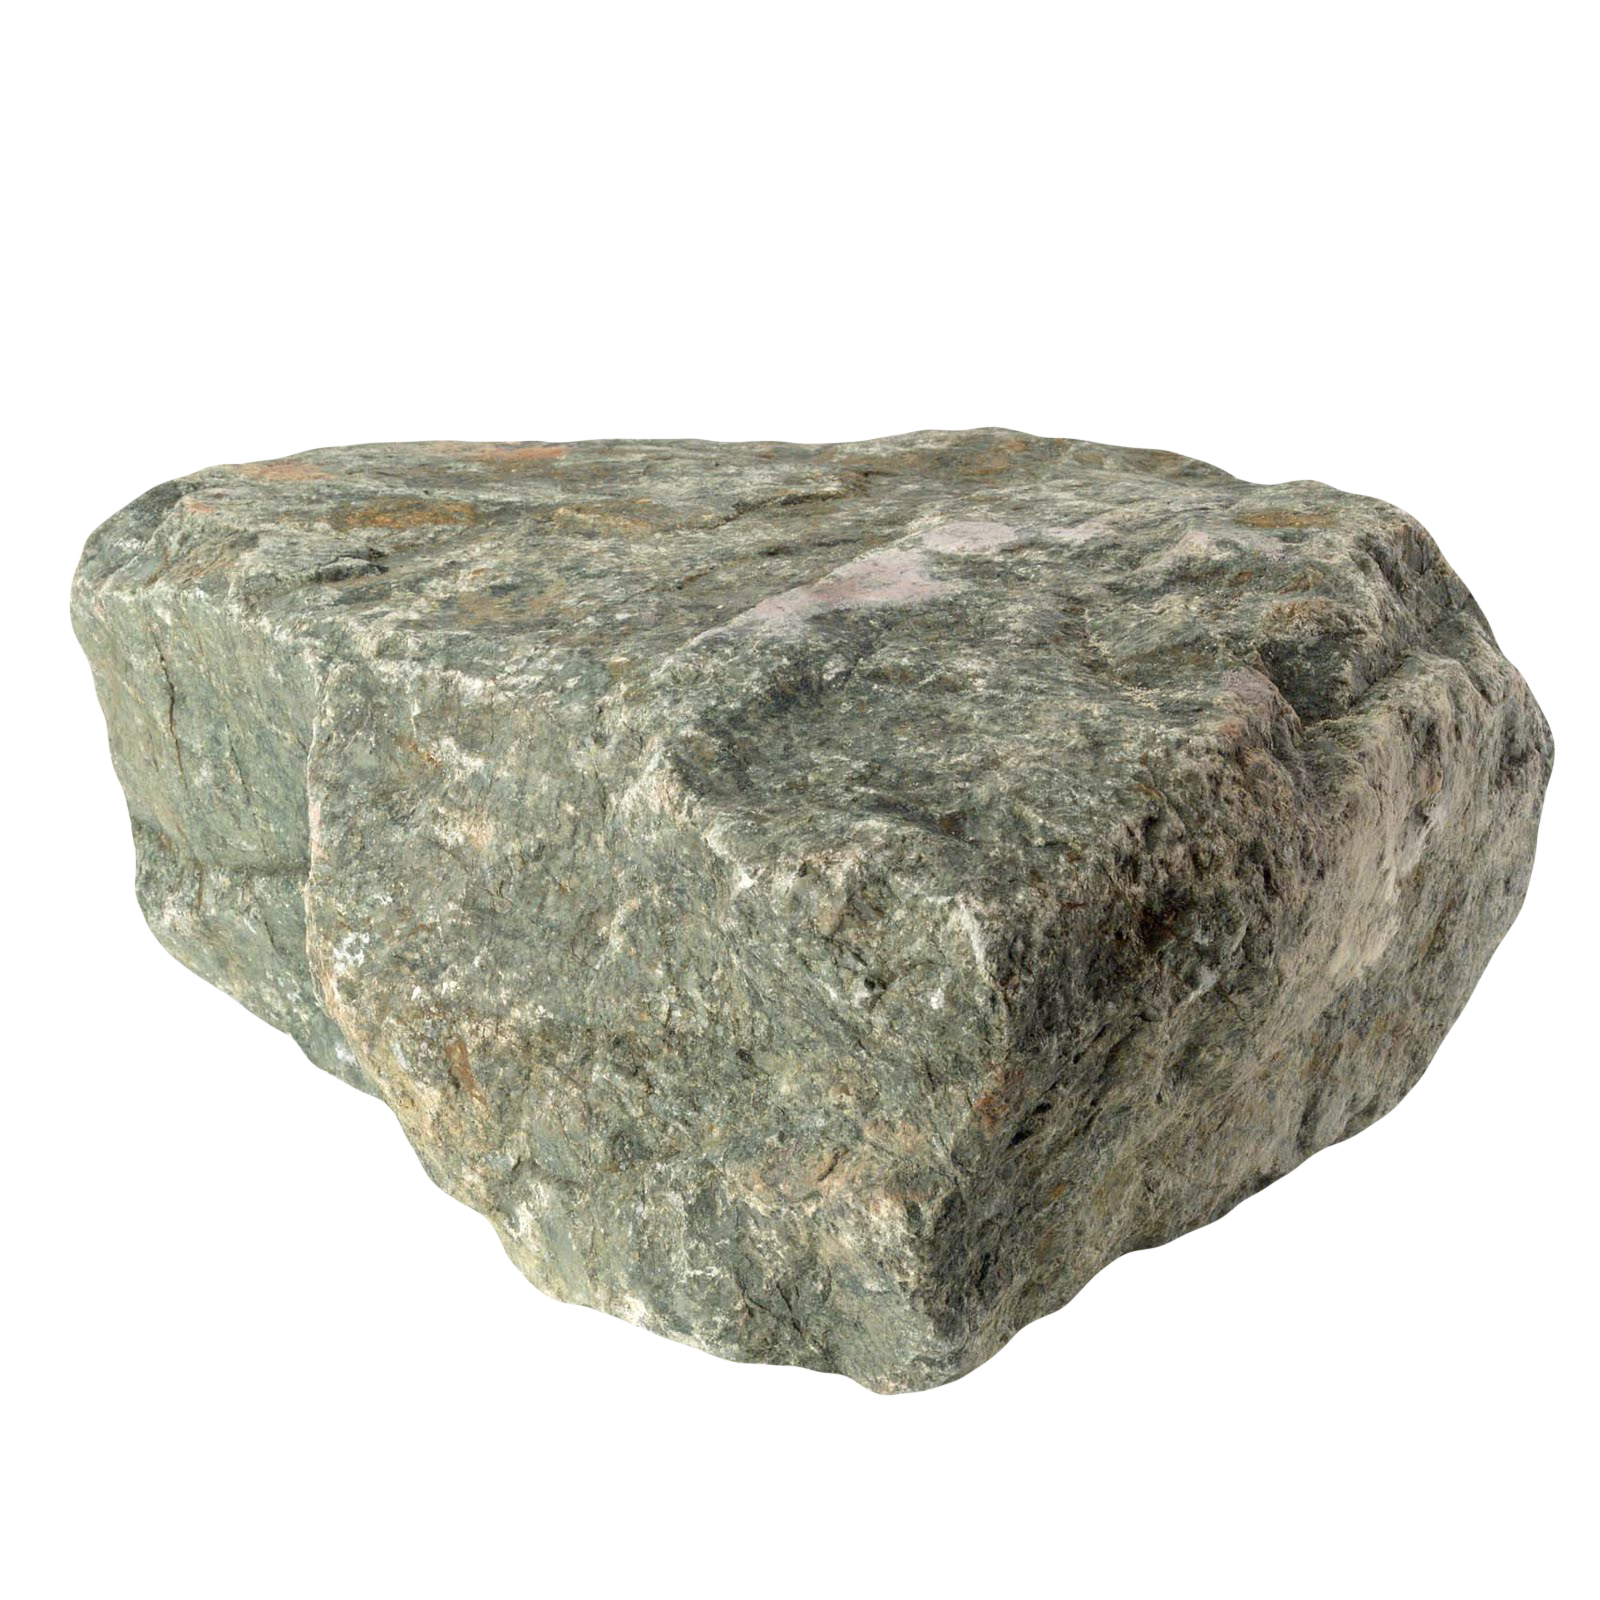 Clipart rock volcanic rock. Stone png images rocks